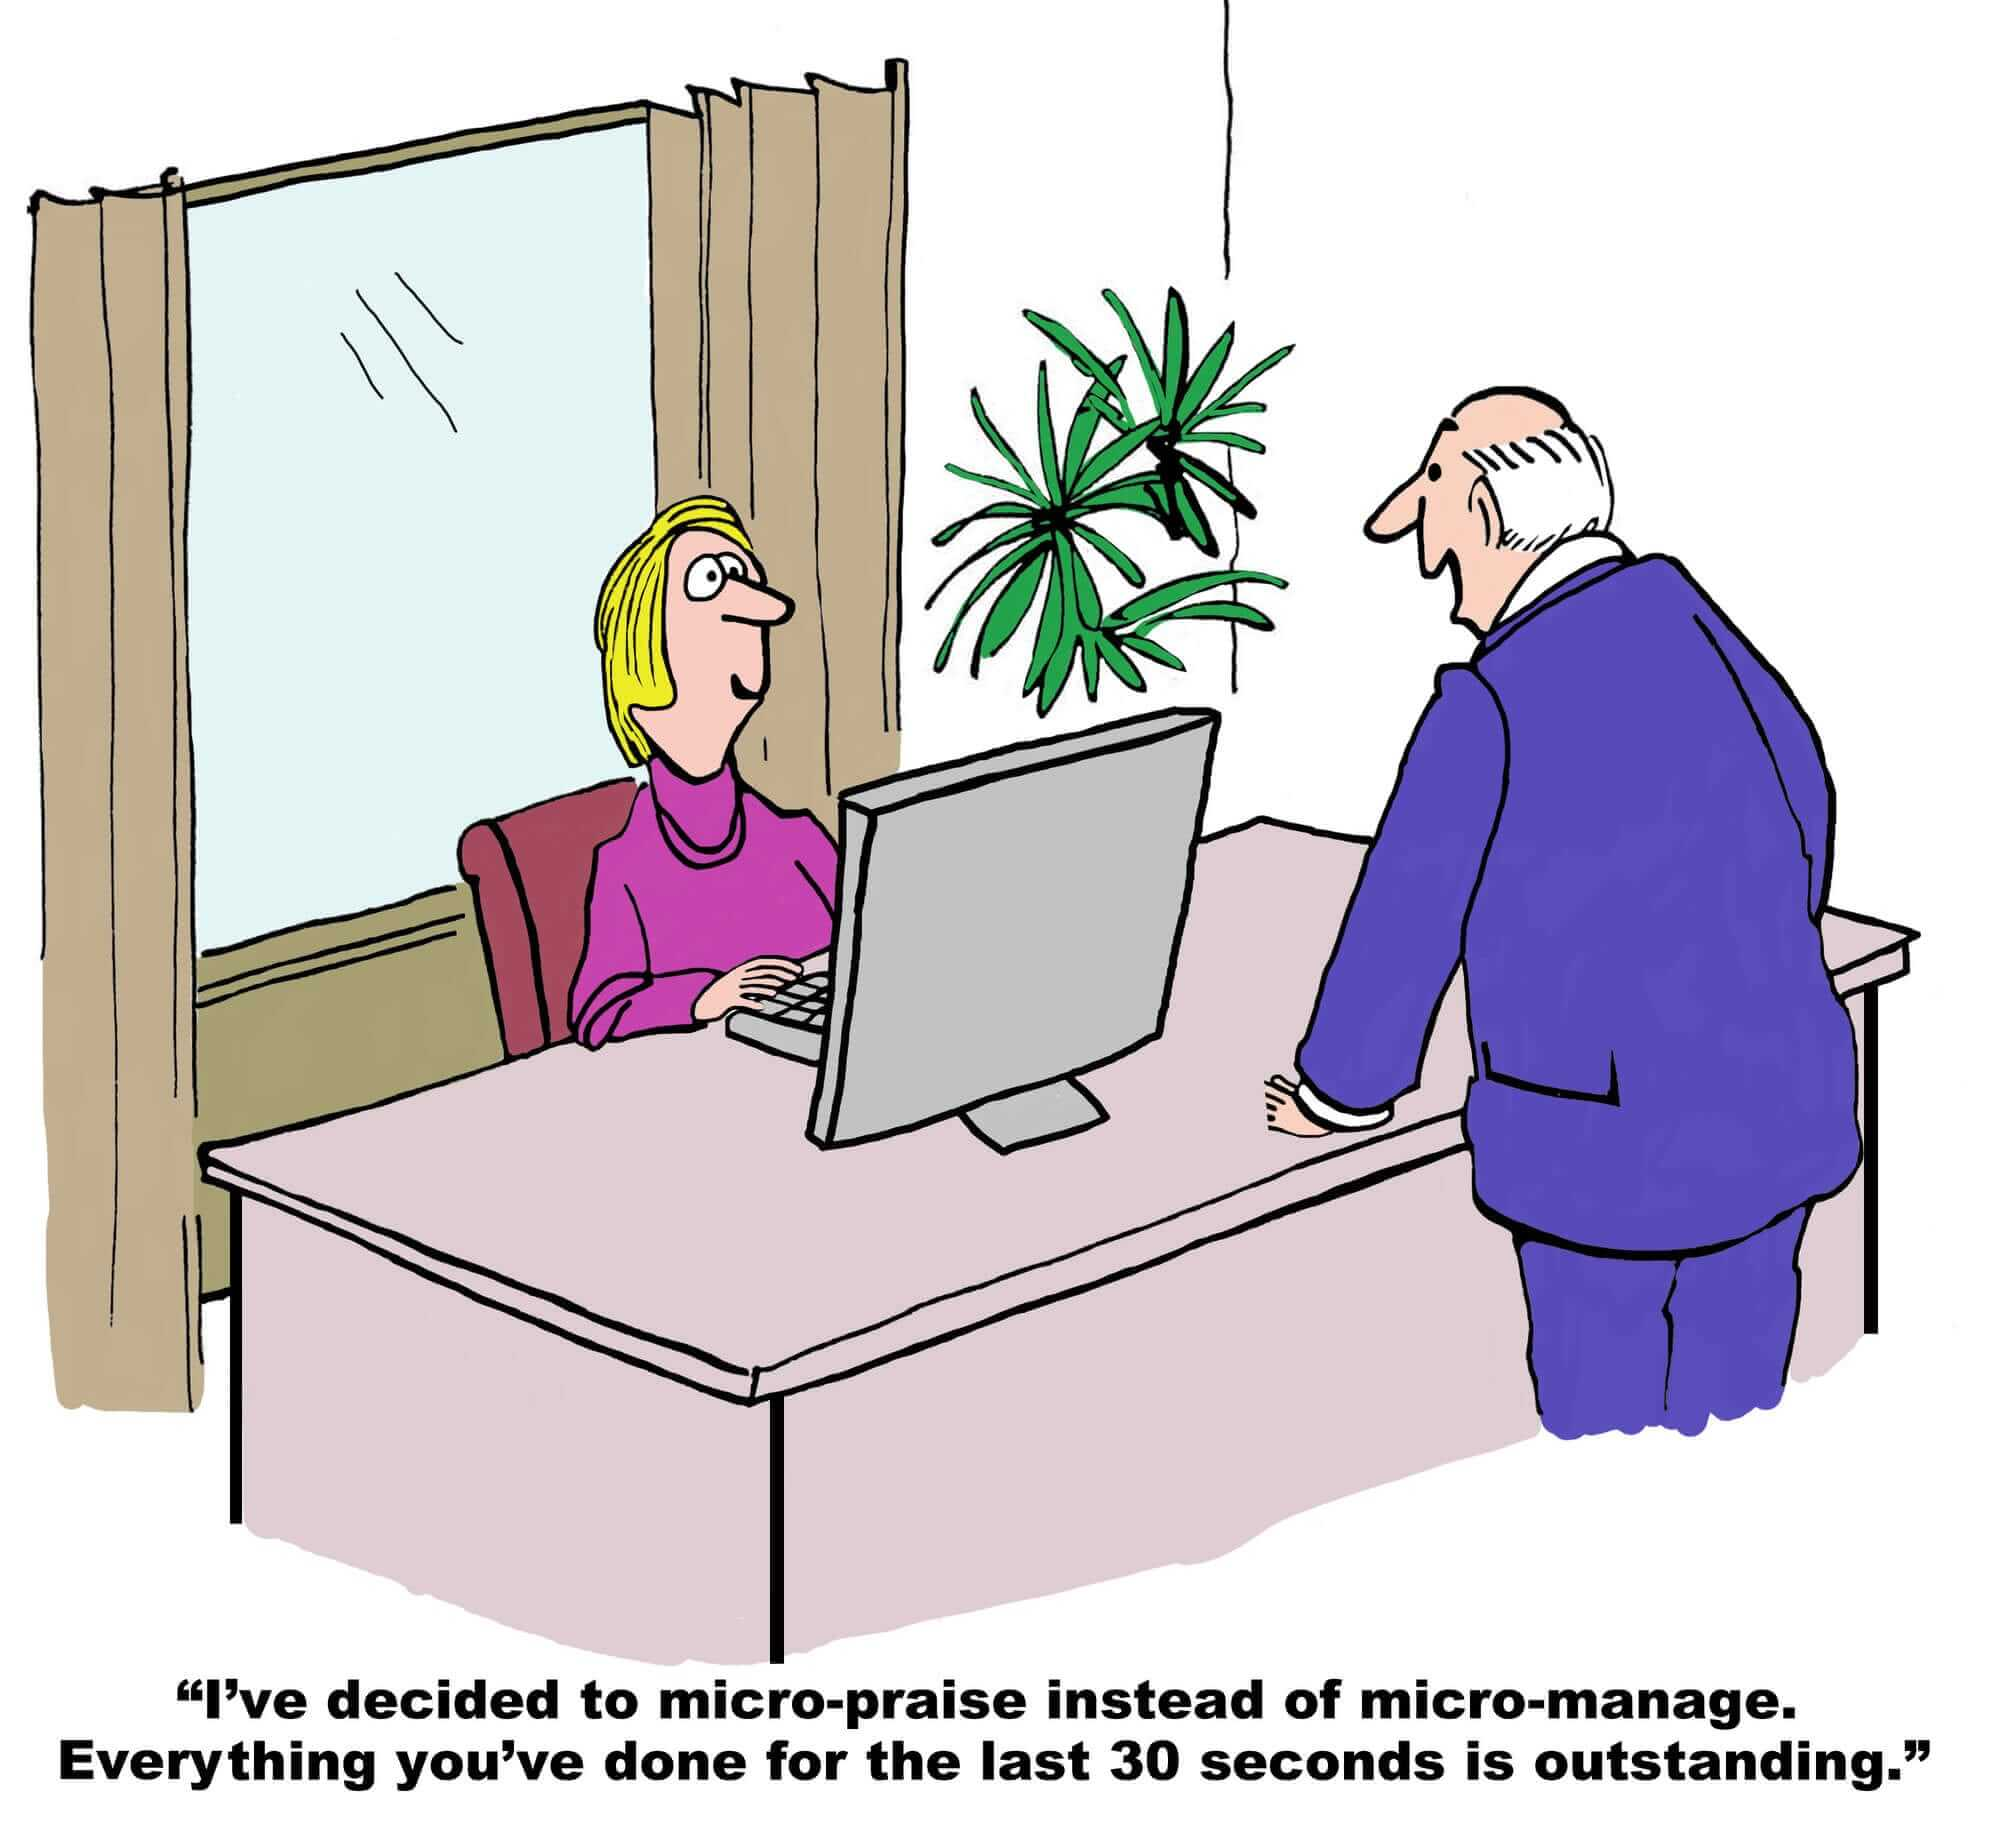 micromanagement-avoid-to-micromanage